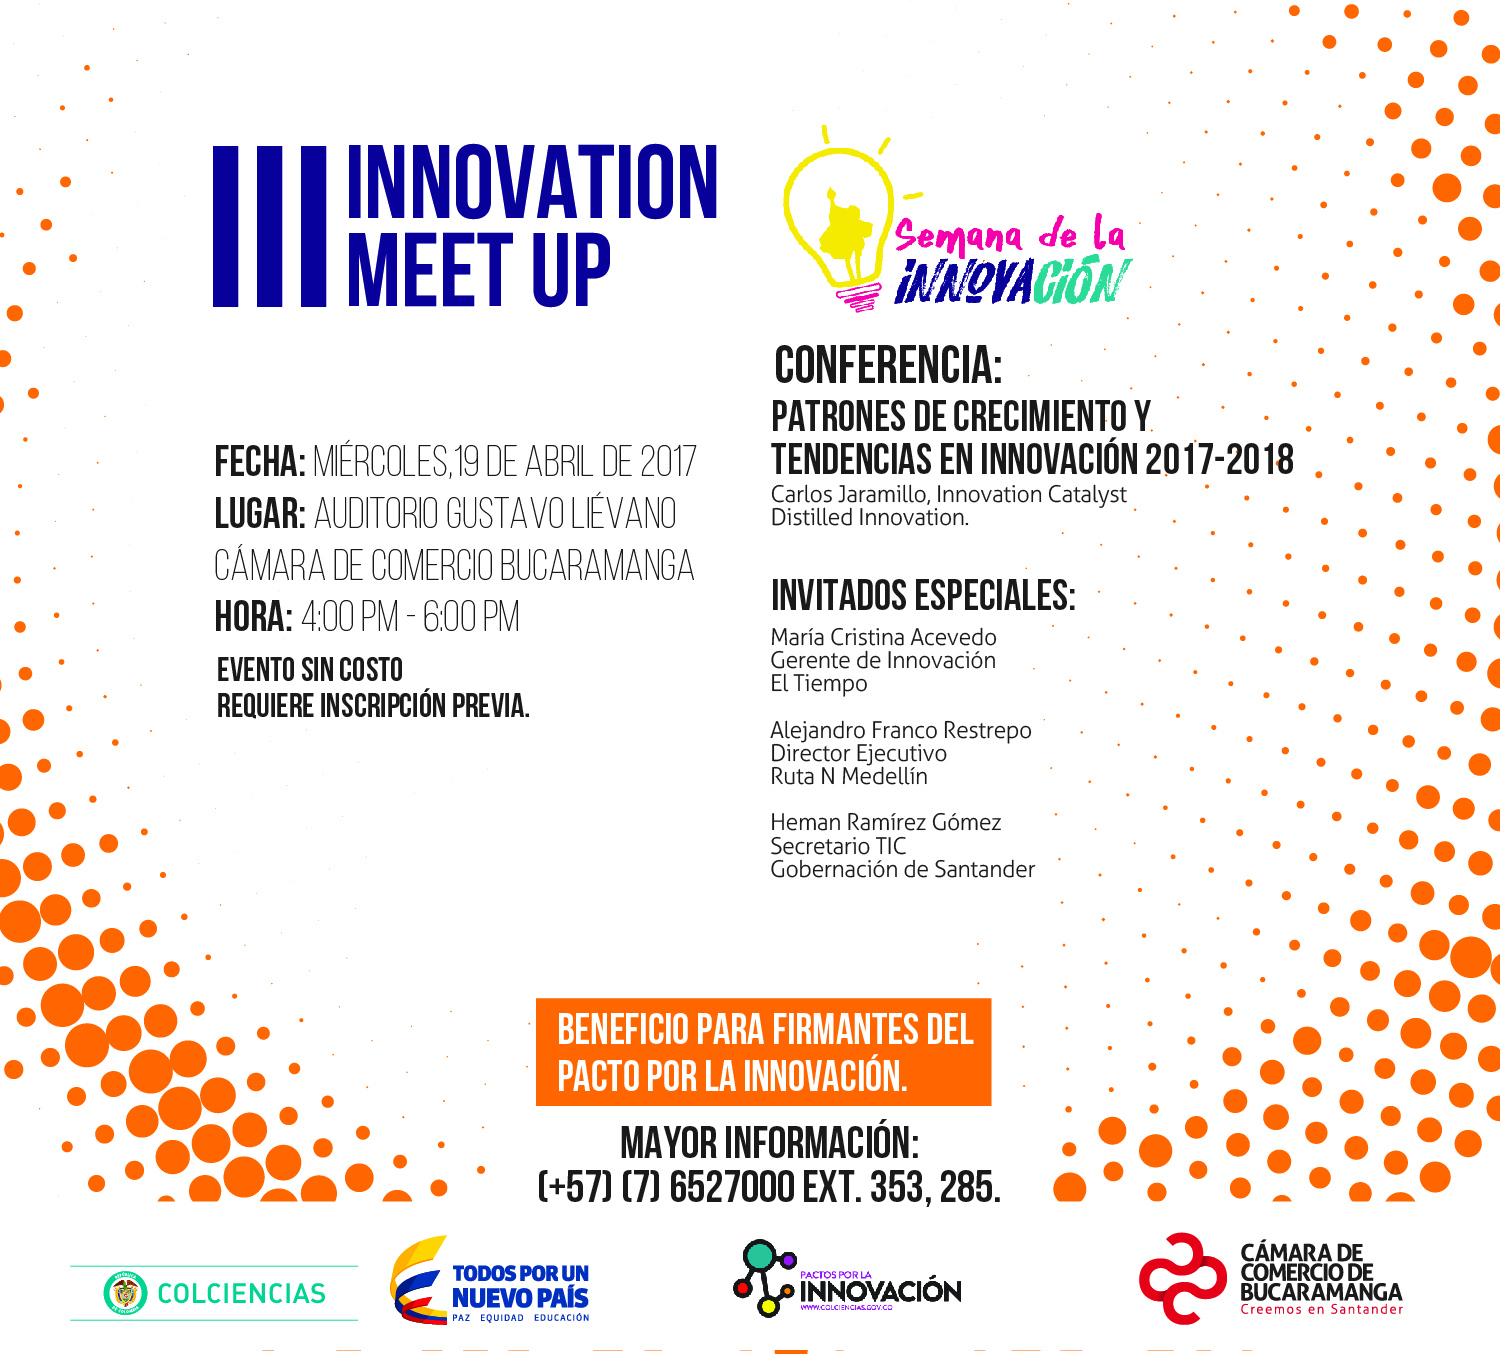 19 ABRIL INNOVATION MEET UP CCB